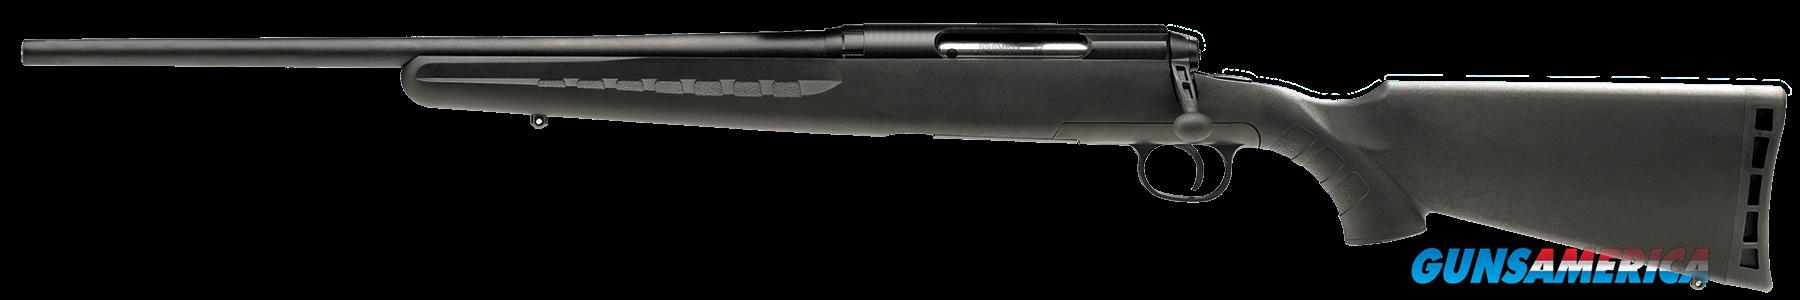 "Savage 19650 Axis Compact LH Bolt 243 Winchester 20"" 4+1 Synthetic Black Stk Black  Guns > Rifles > Savage Rifles > Standard Bolt Action > Sporting"